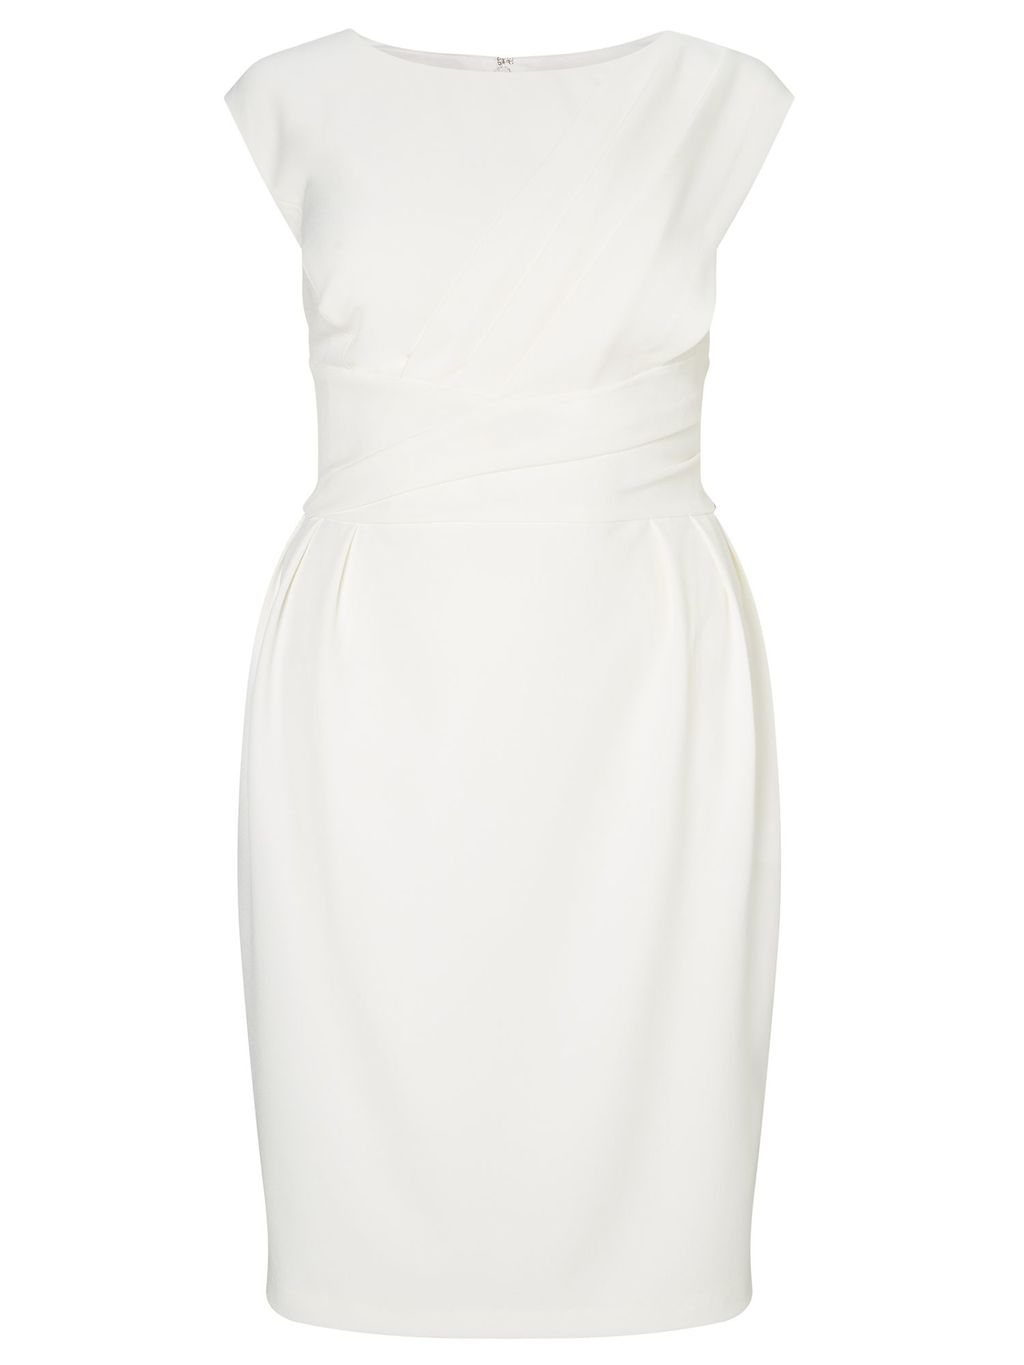 Plus Size Cap Sleeve Origami Shift Dress, Cream - style: shift; sleeve style: capped; pattern: plain; predominant colour: ivory/cream; occasions: evening; length: just above the knee; fit: body skimming; fibres: polyester/polyamide - stretch; neckline: crew; sleeve length: short sleeve; pattern type: fabric; texture group: jersey - stretchy/drapey; season: a/w 2016; wardrobe: event